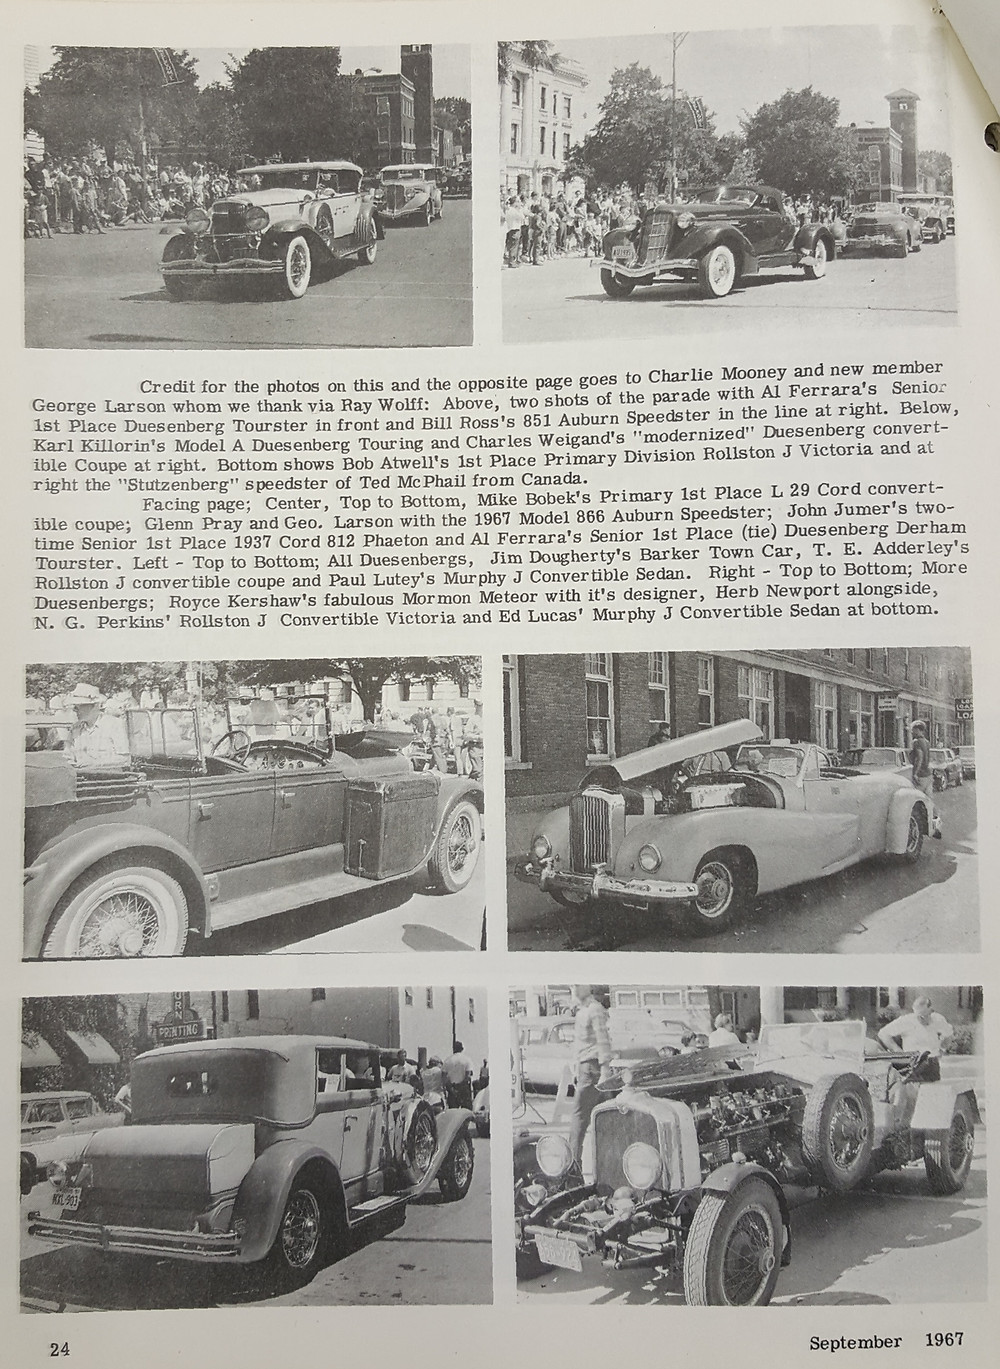 From the Auburn Reunion special issue of the ACD Newsletter depicting our Model A Duesy. Fifty years ago!